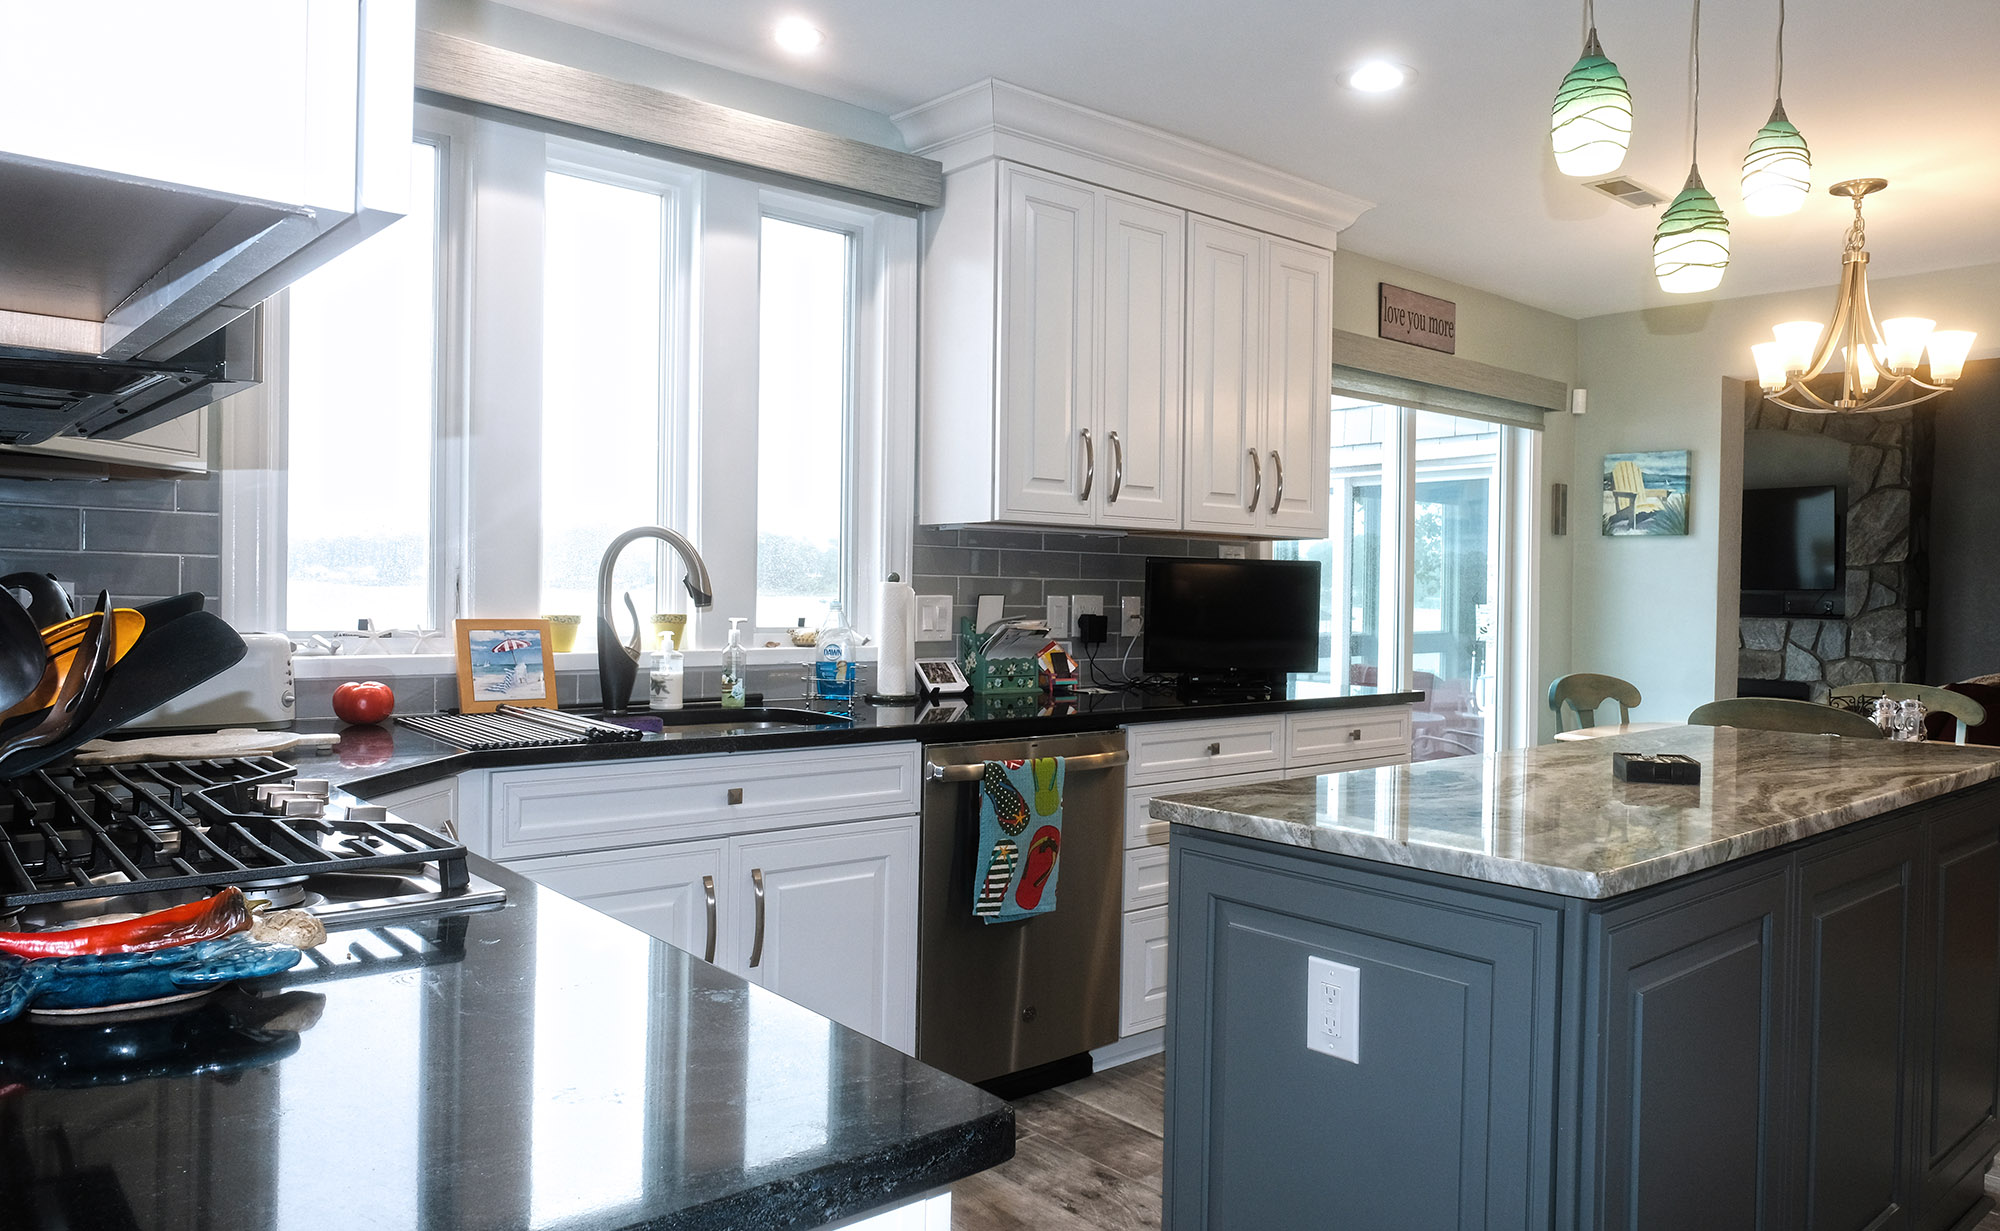 Kitchen remodel, two tone cabinets, wood look tile floor, opened up to living area.